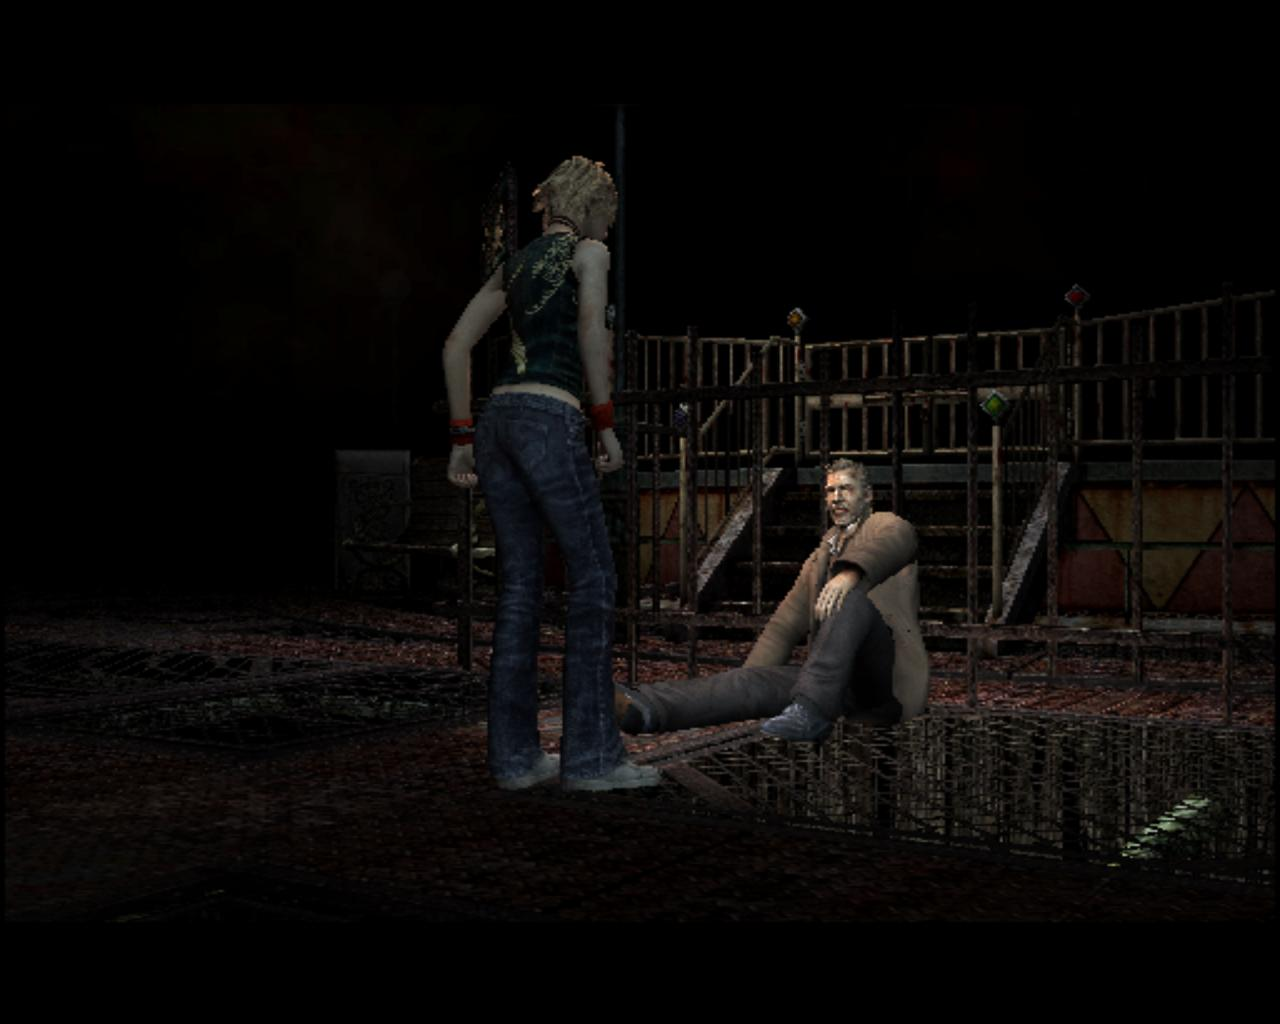 Silent Hill 3 Wallpaper by ParRafahell 1280x1024